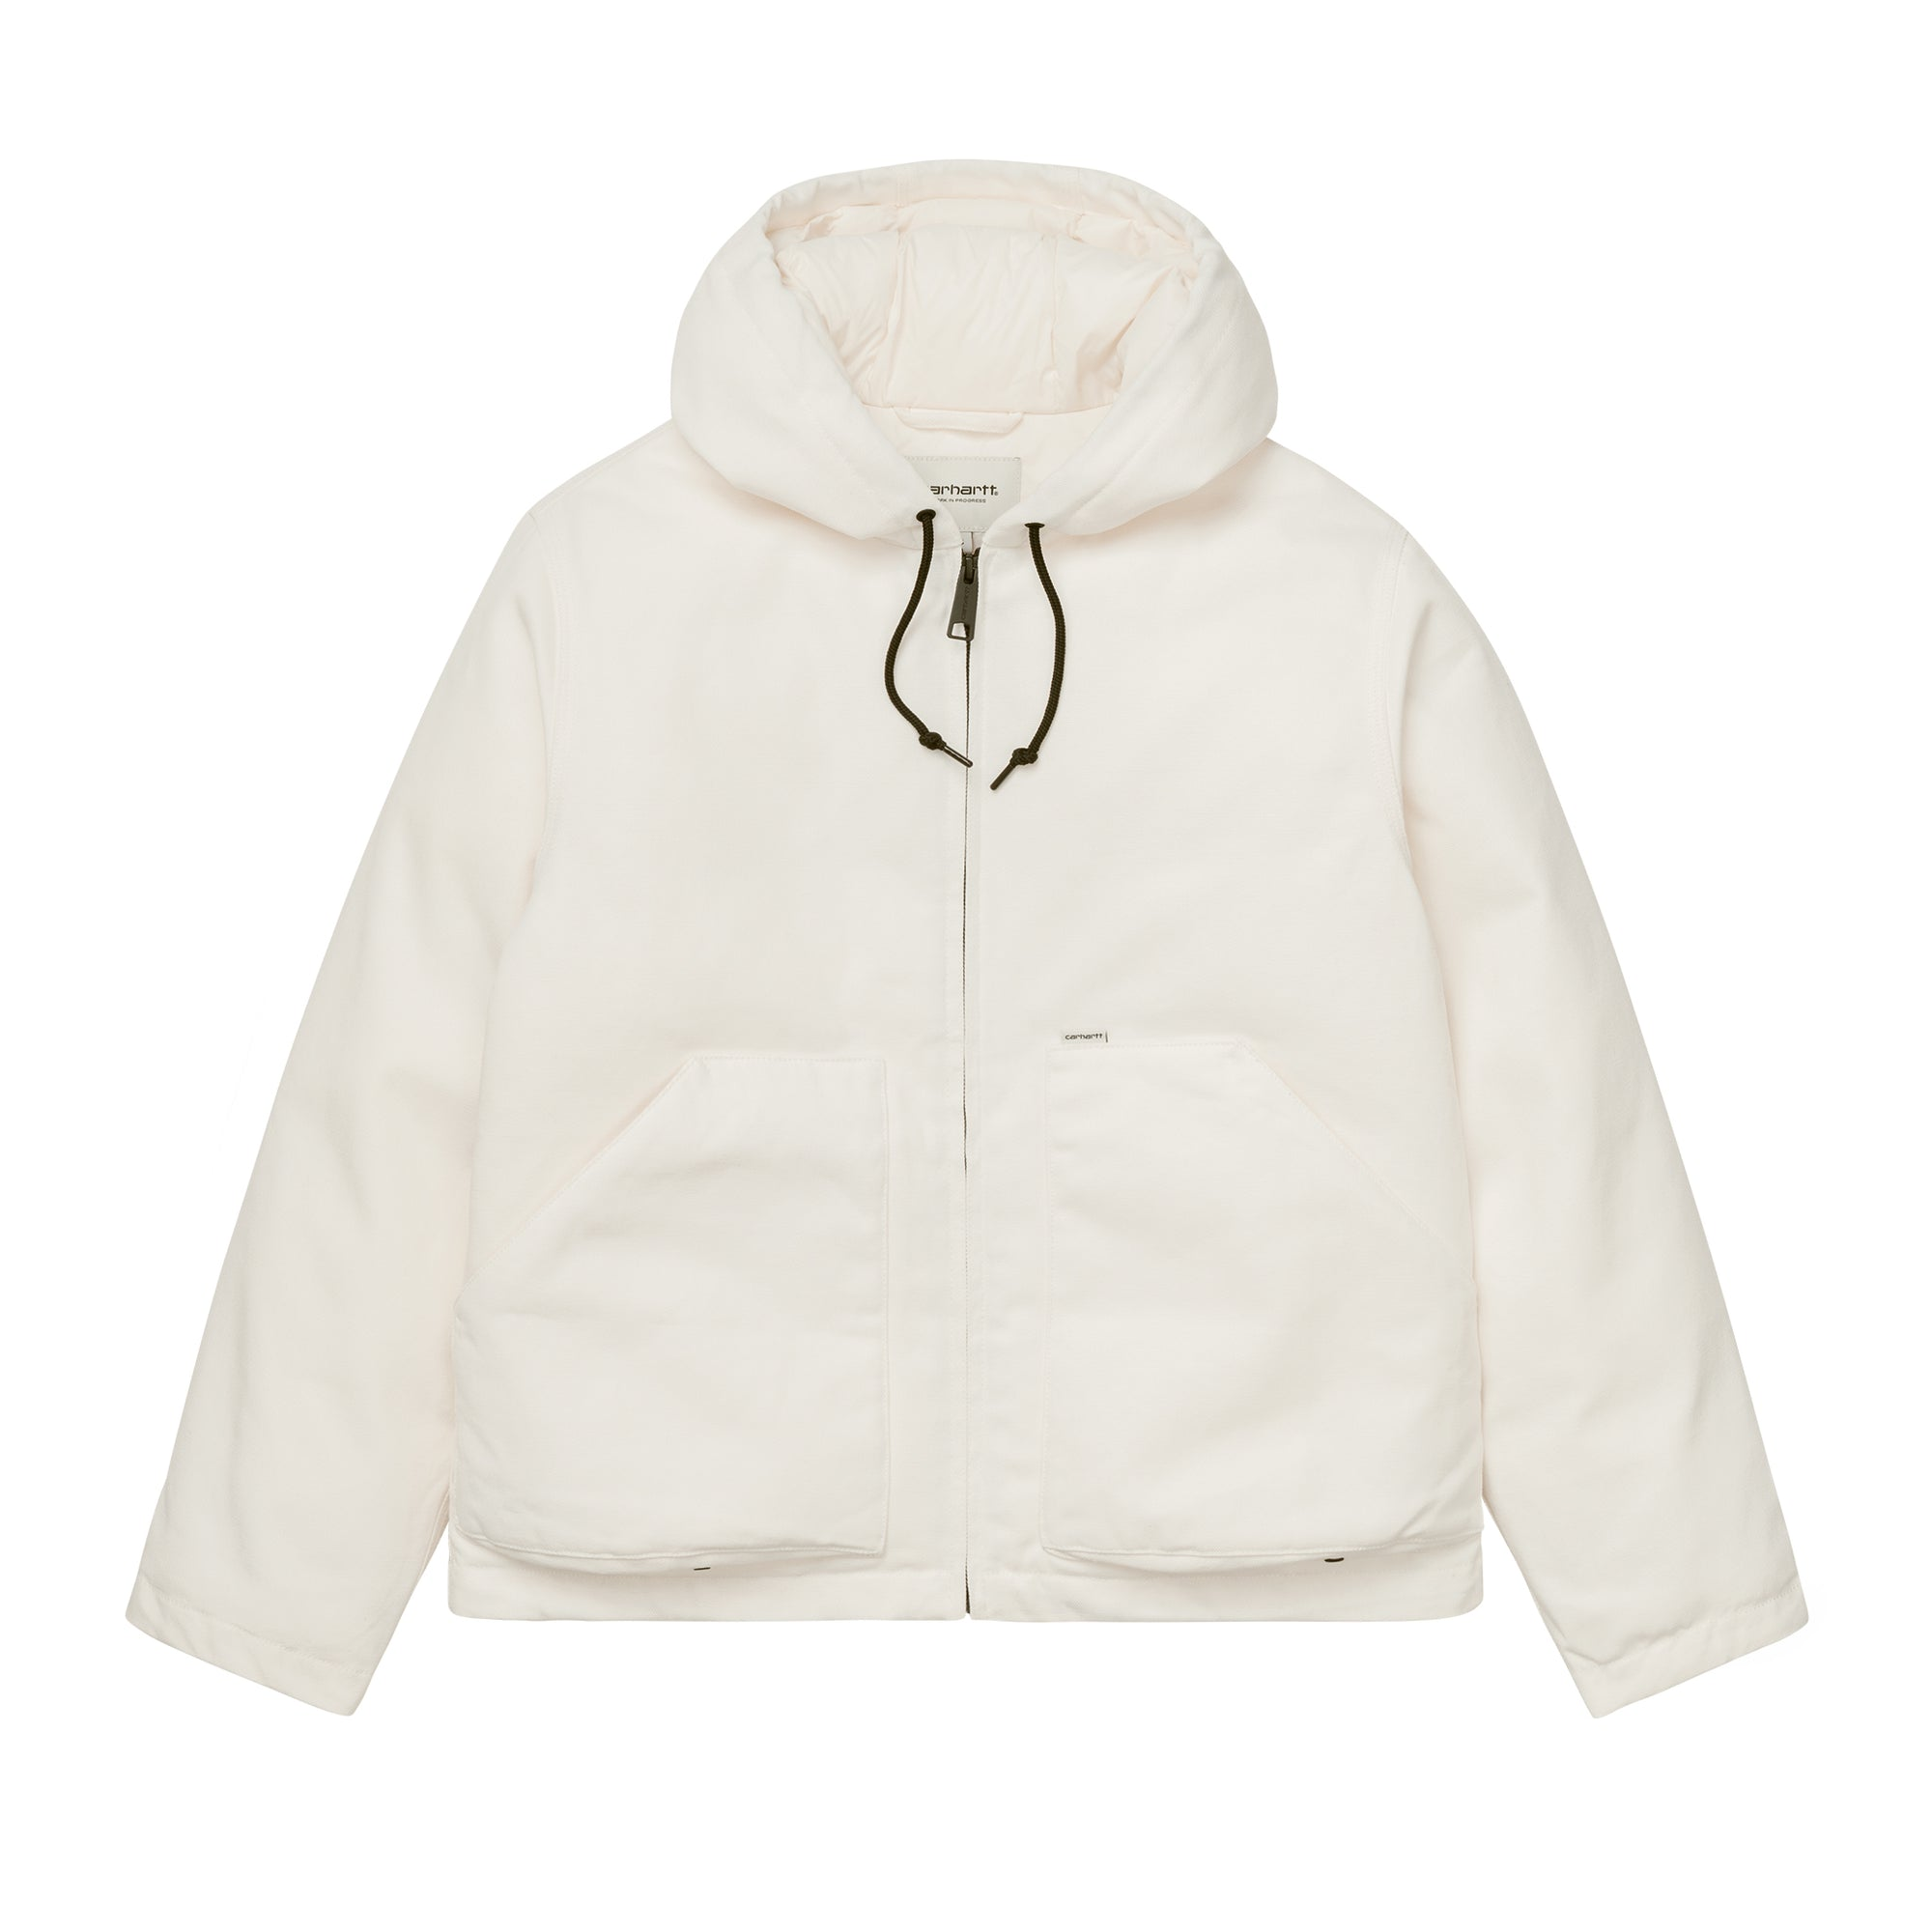 Carhartt WIP Womens Brooke Jacket: Wax - The Union Project